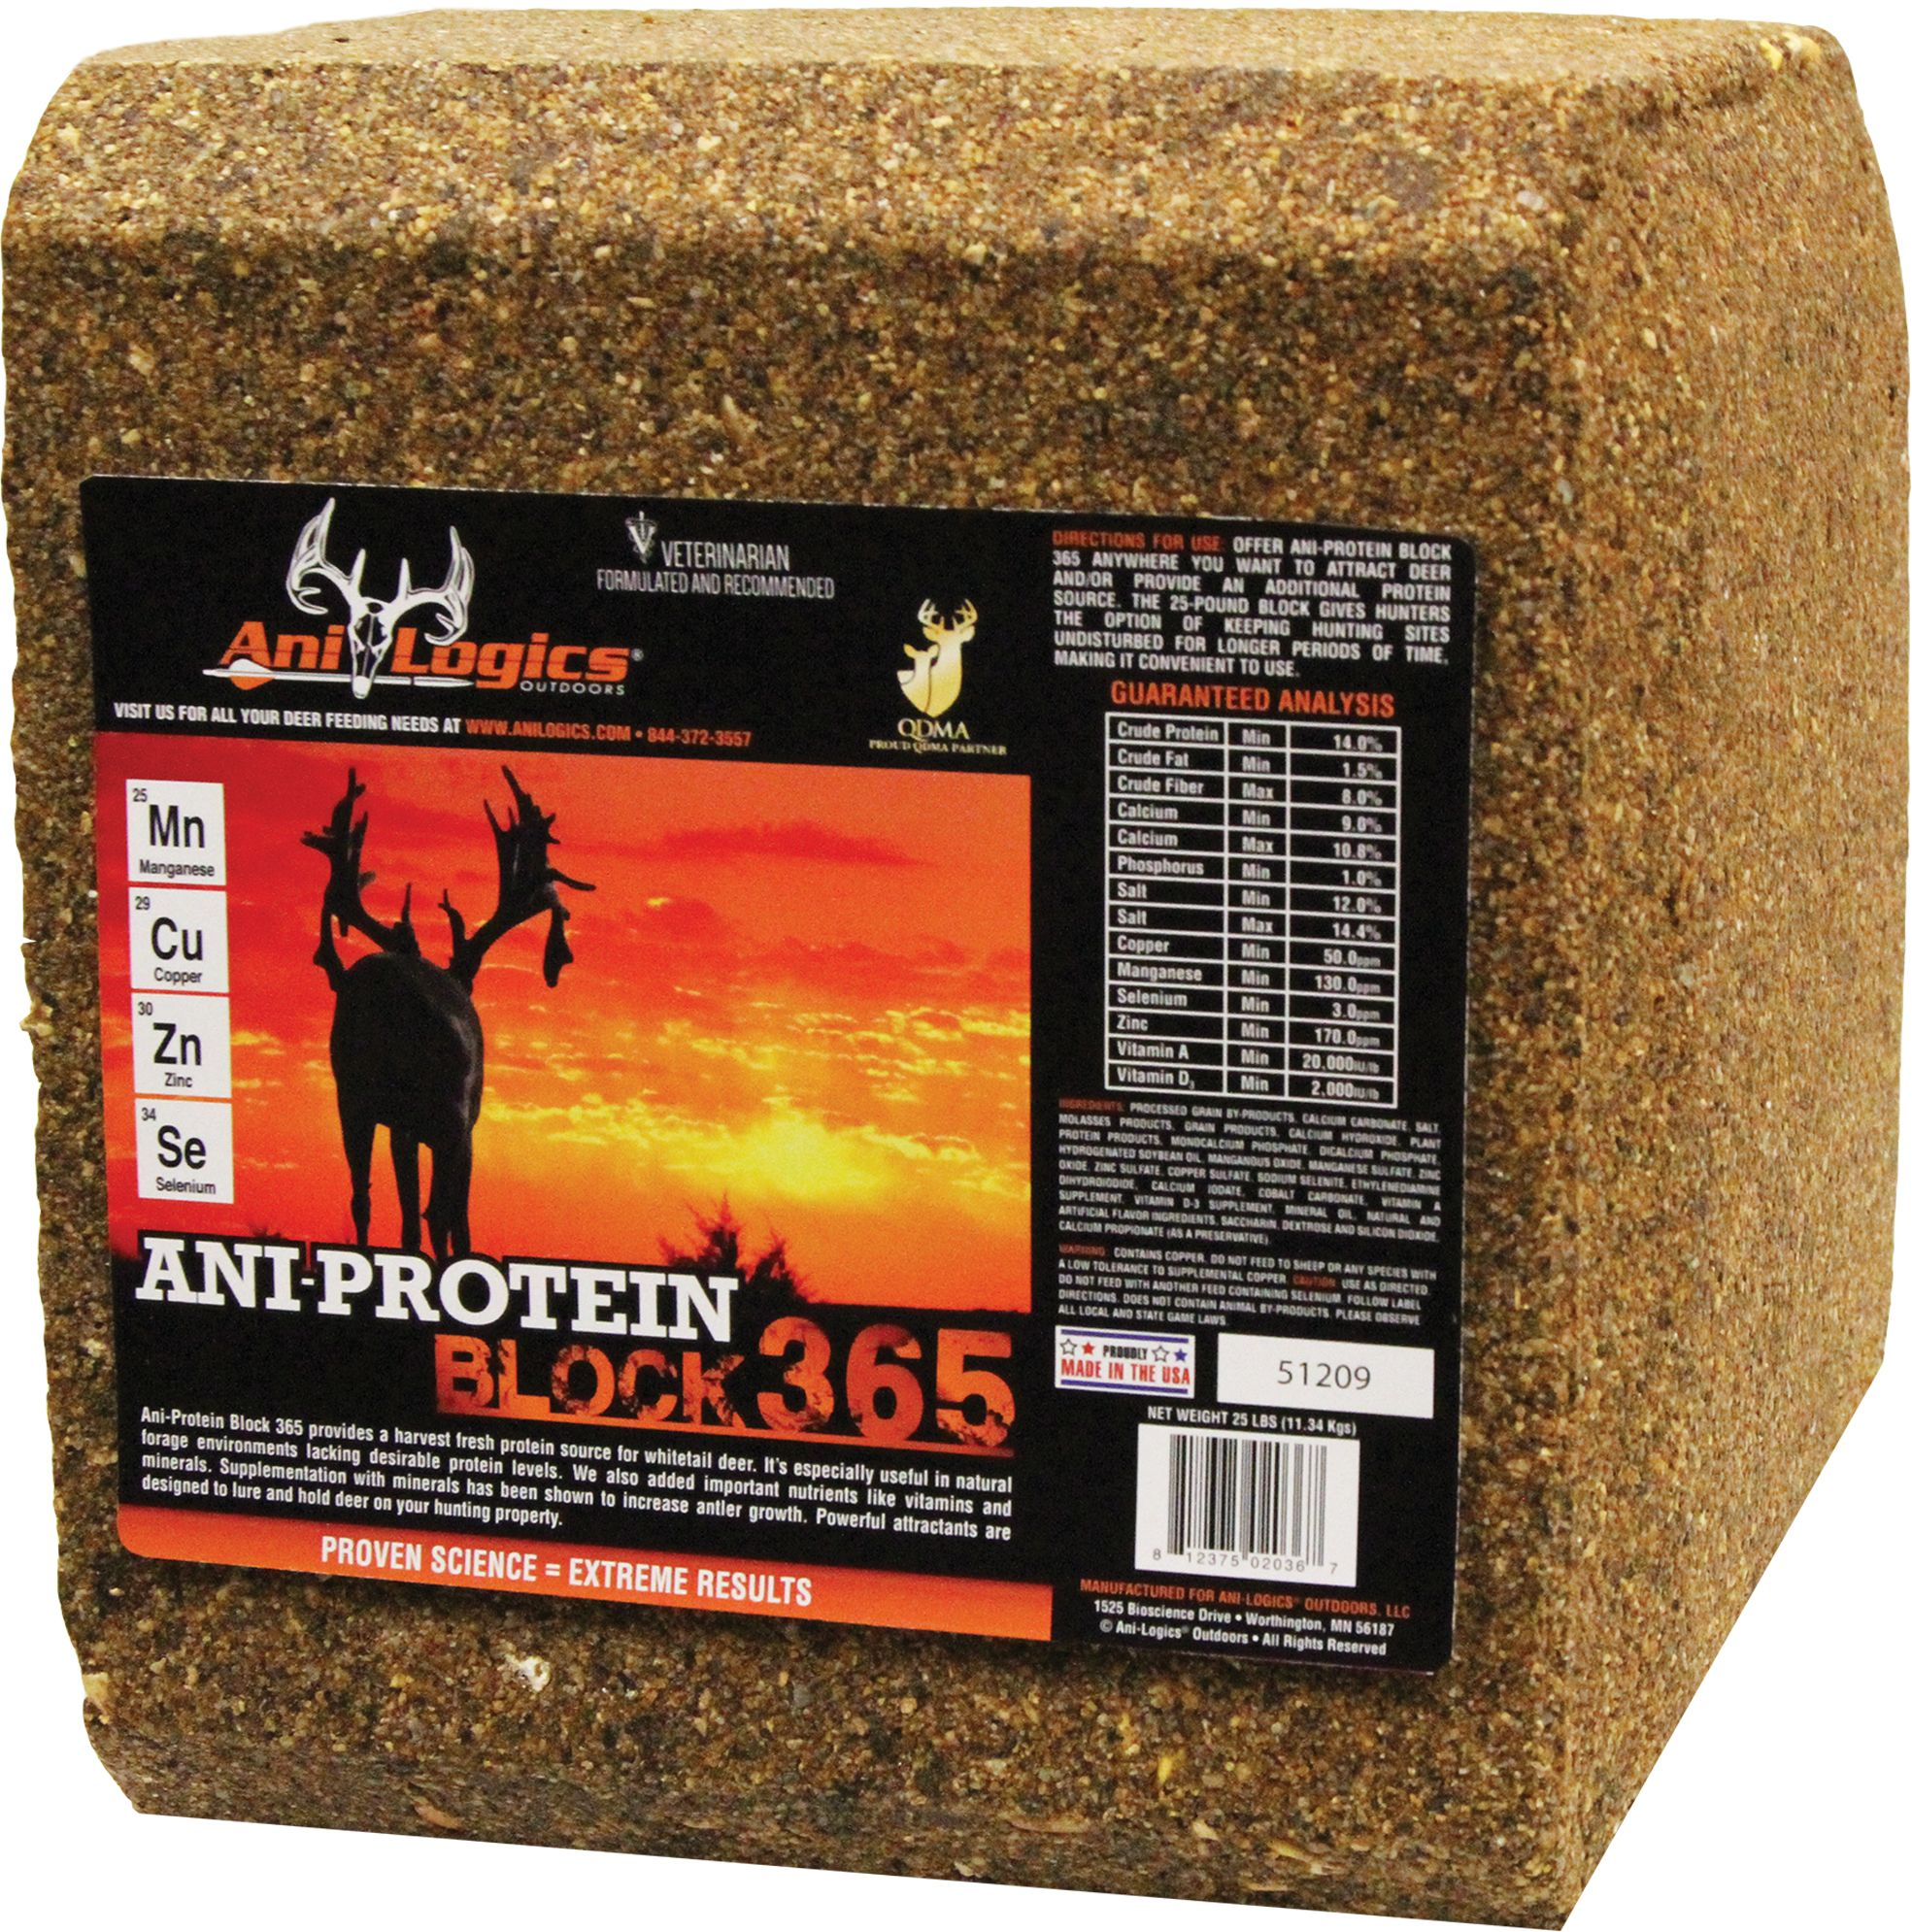 Ani-Logics Ani-Protein Block 365 Deer Attractant thumbnail